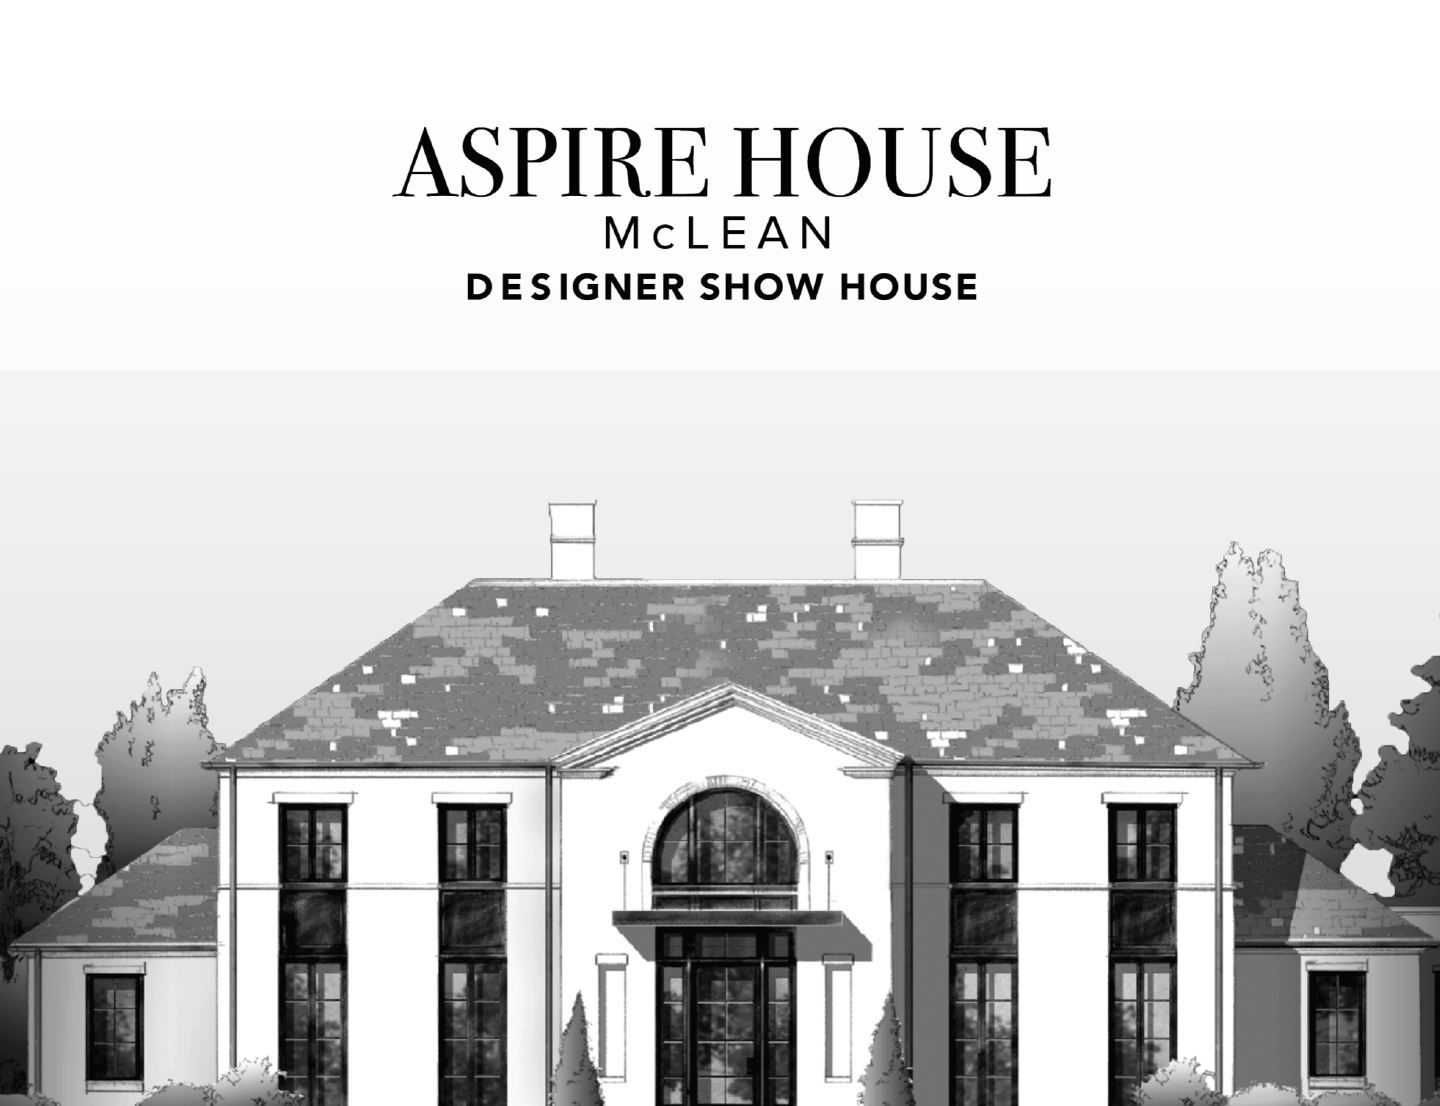 First Look at ASPIRE HOUSE McLean Designer Show House